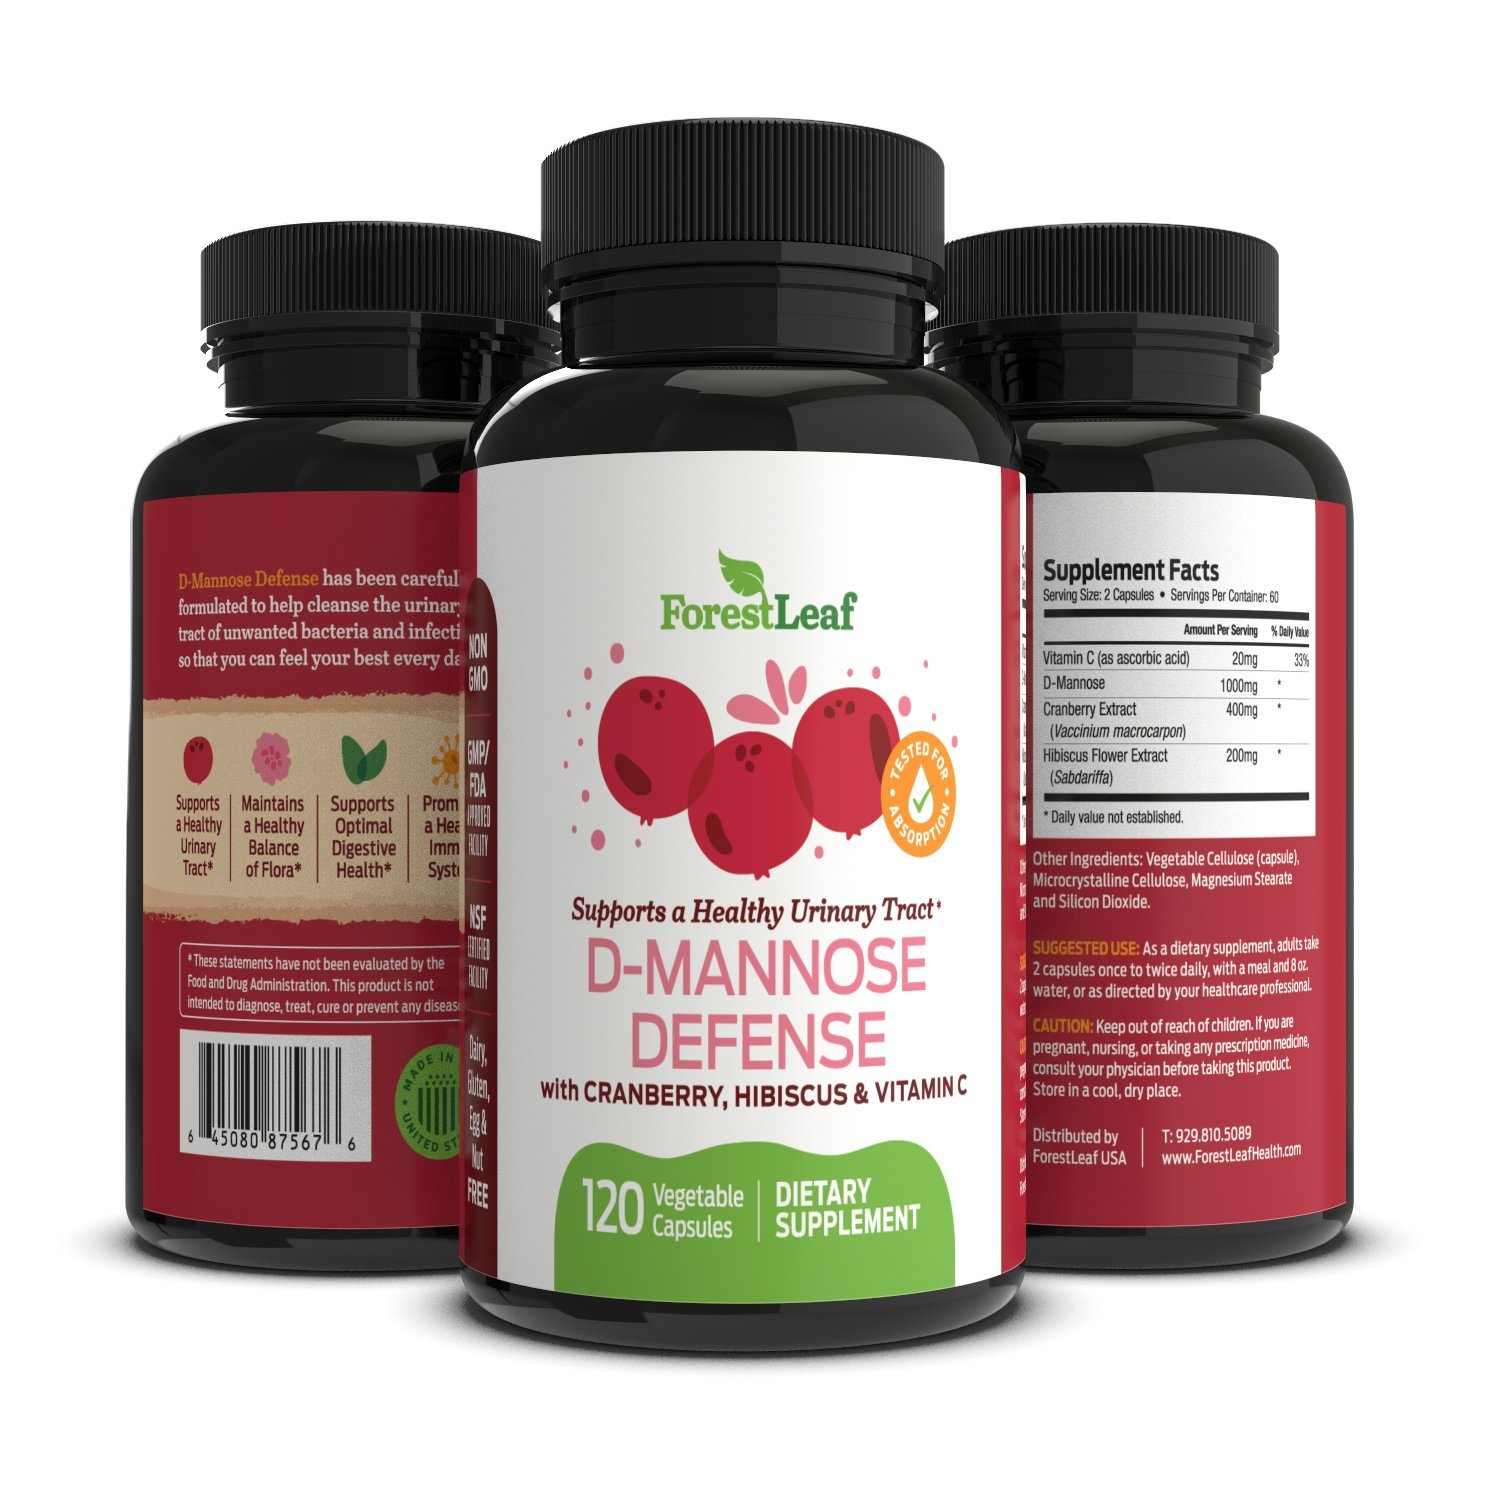 D-Mannose Defense Supplements (1000mg) - Safe, Natural Cleansing for Urinary Tract and Bladder Health- Helps Prevent UTI and Promotes Healthy Immune System and Gut Flora - 120 Capsules - By ForestLeaf by ForestLeaf